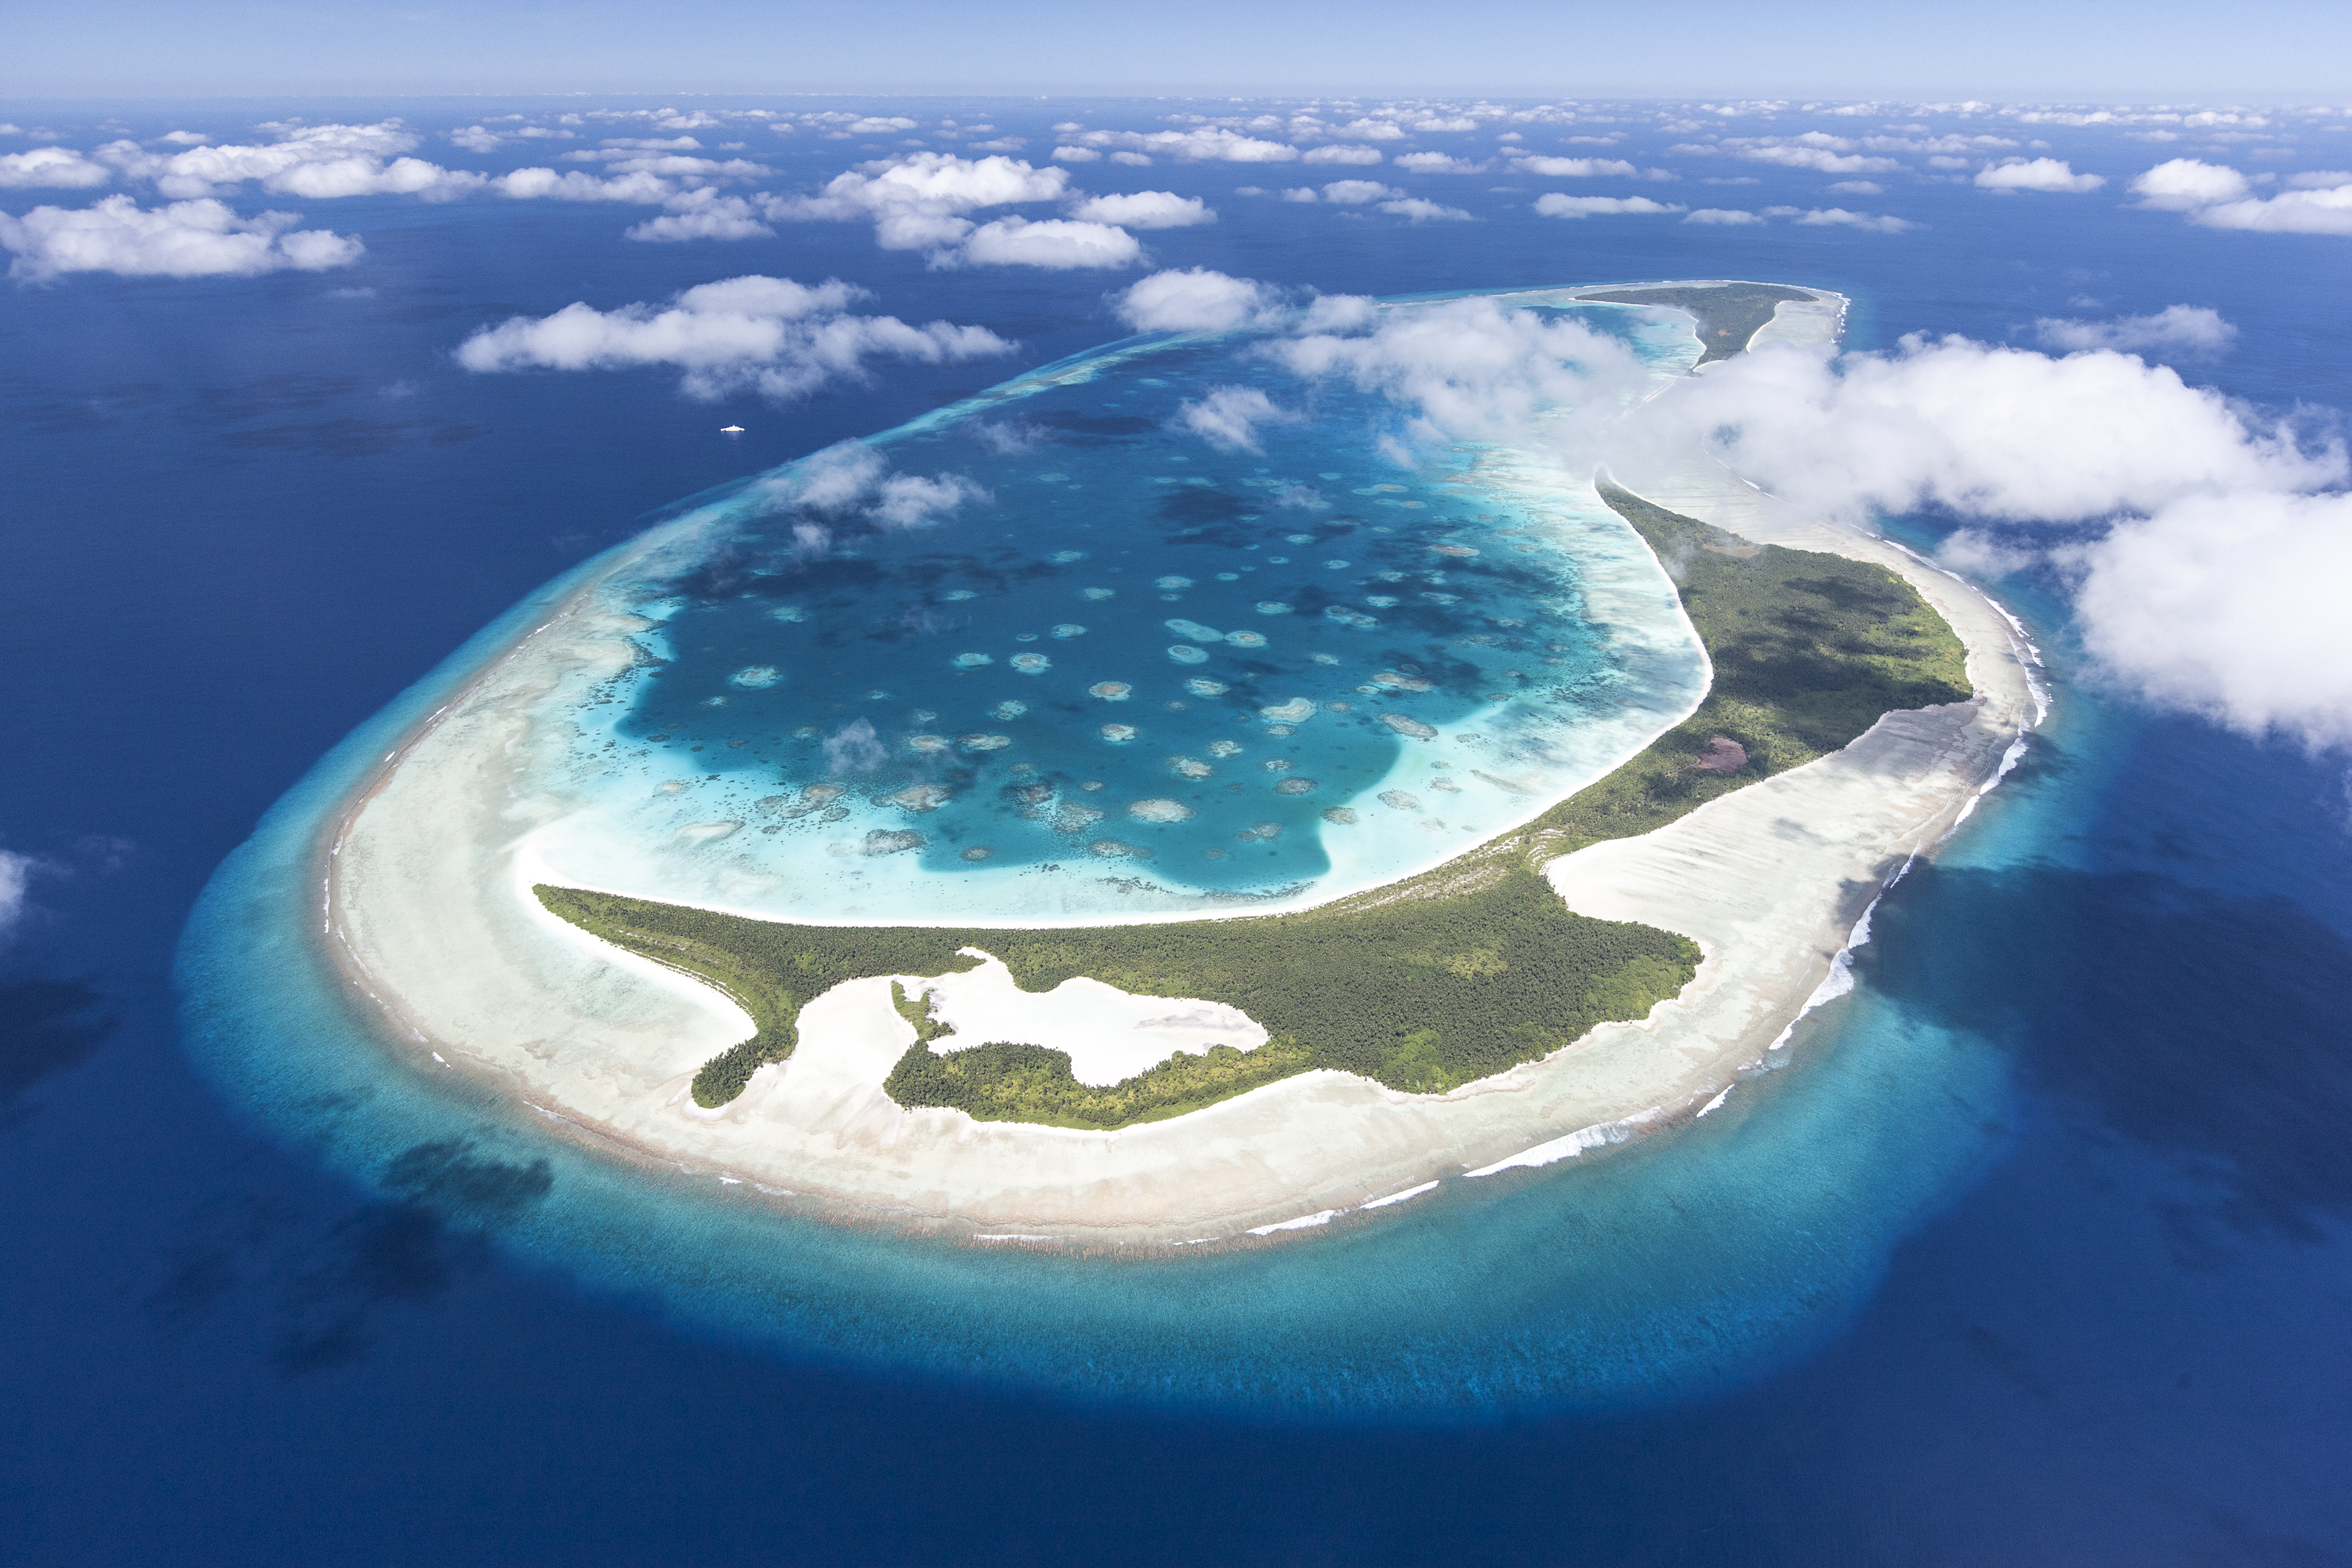 What Is The Largest Island In The Pacific